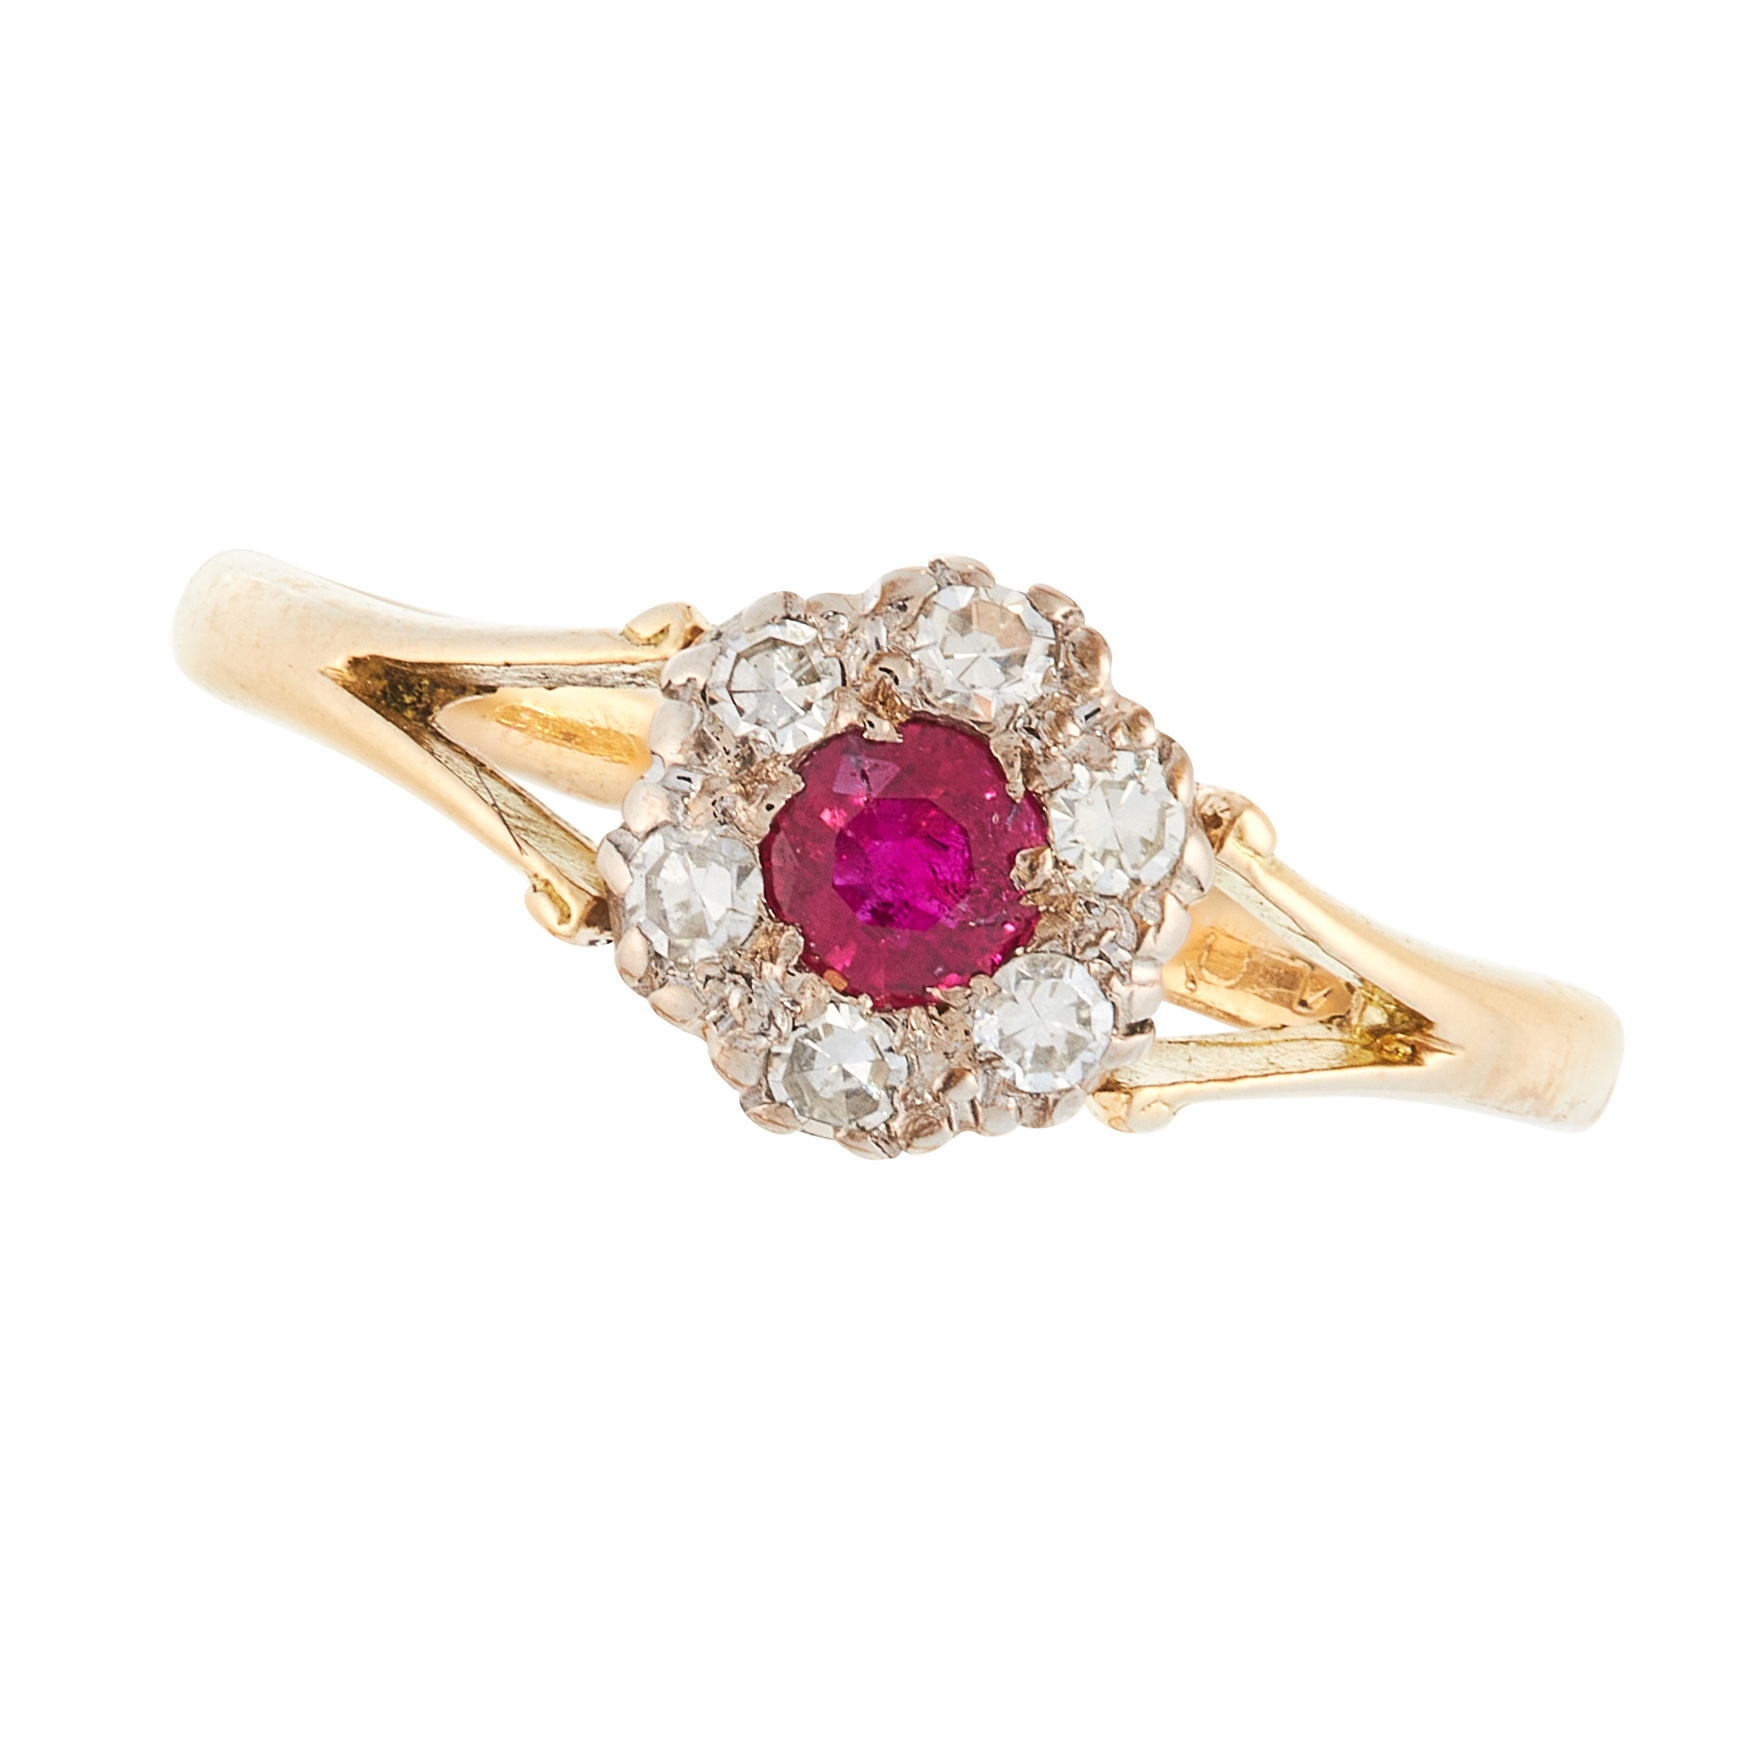 A RUBY AND DIAMOND DRESS RING, EARLY 20TH CENTURY in 18ct yellow gold, set with a round cut ruby